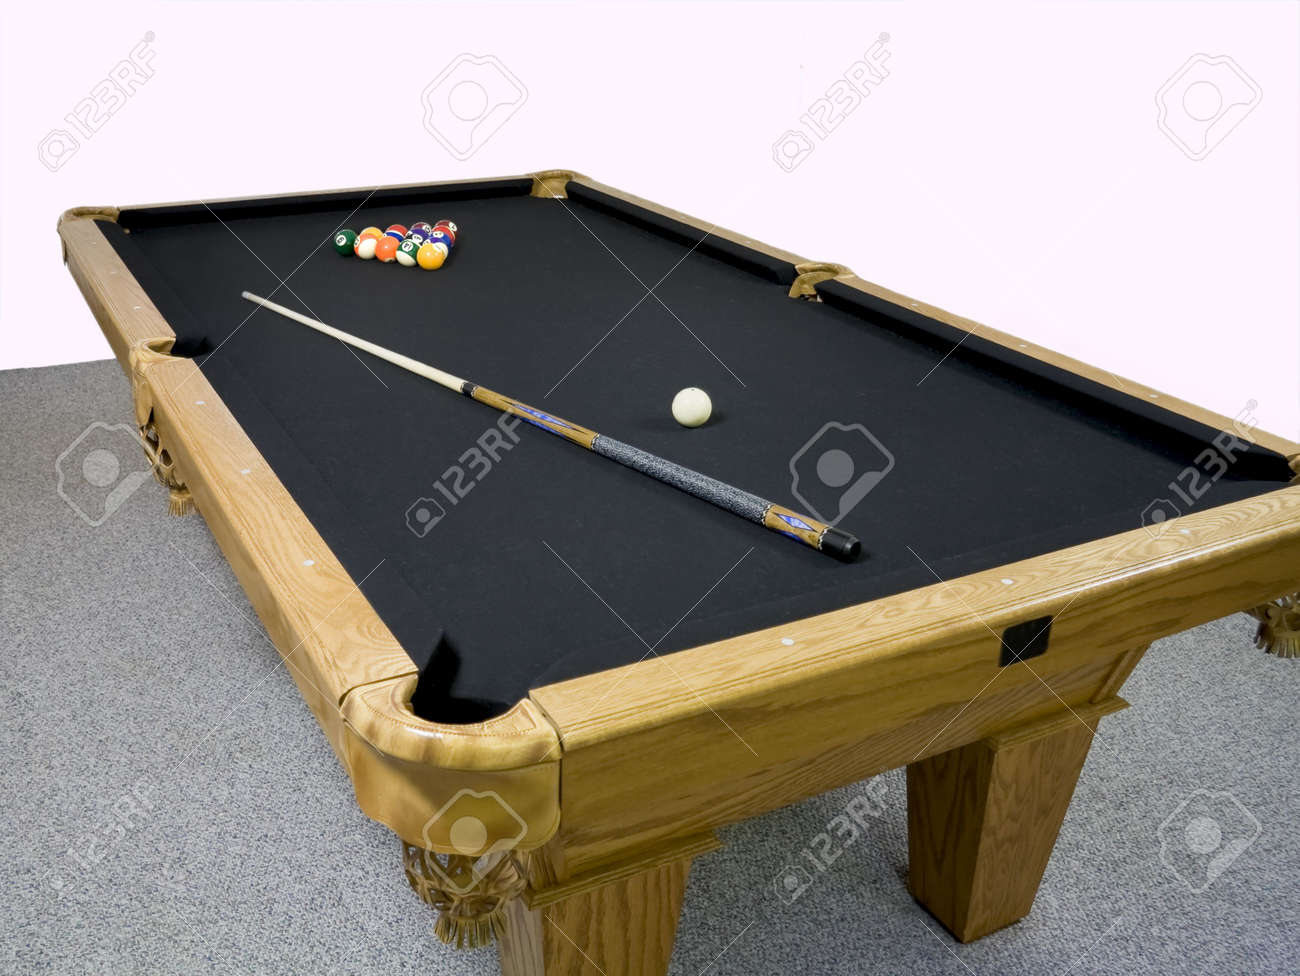 Luxury Black Table Top Pool Table With Racked Billiards And Stick Laying On  Top. Stock